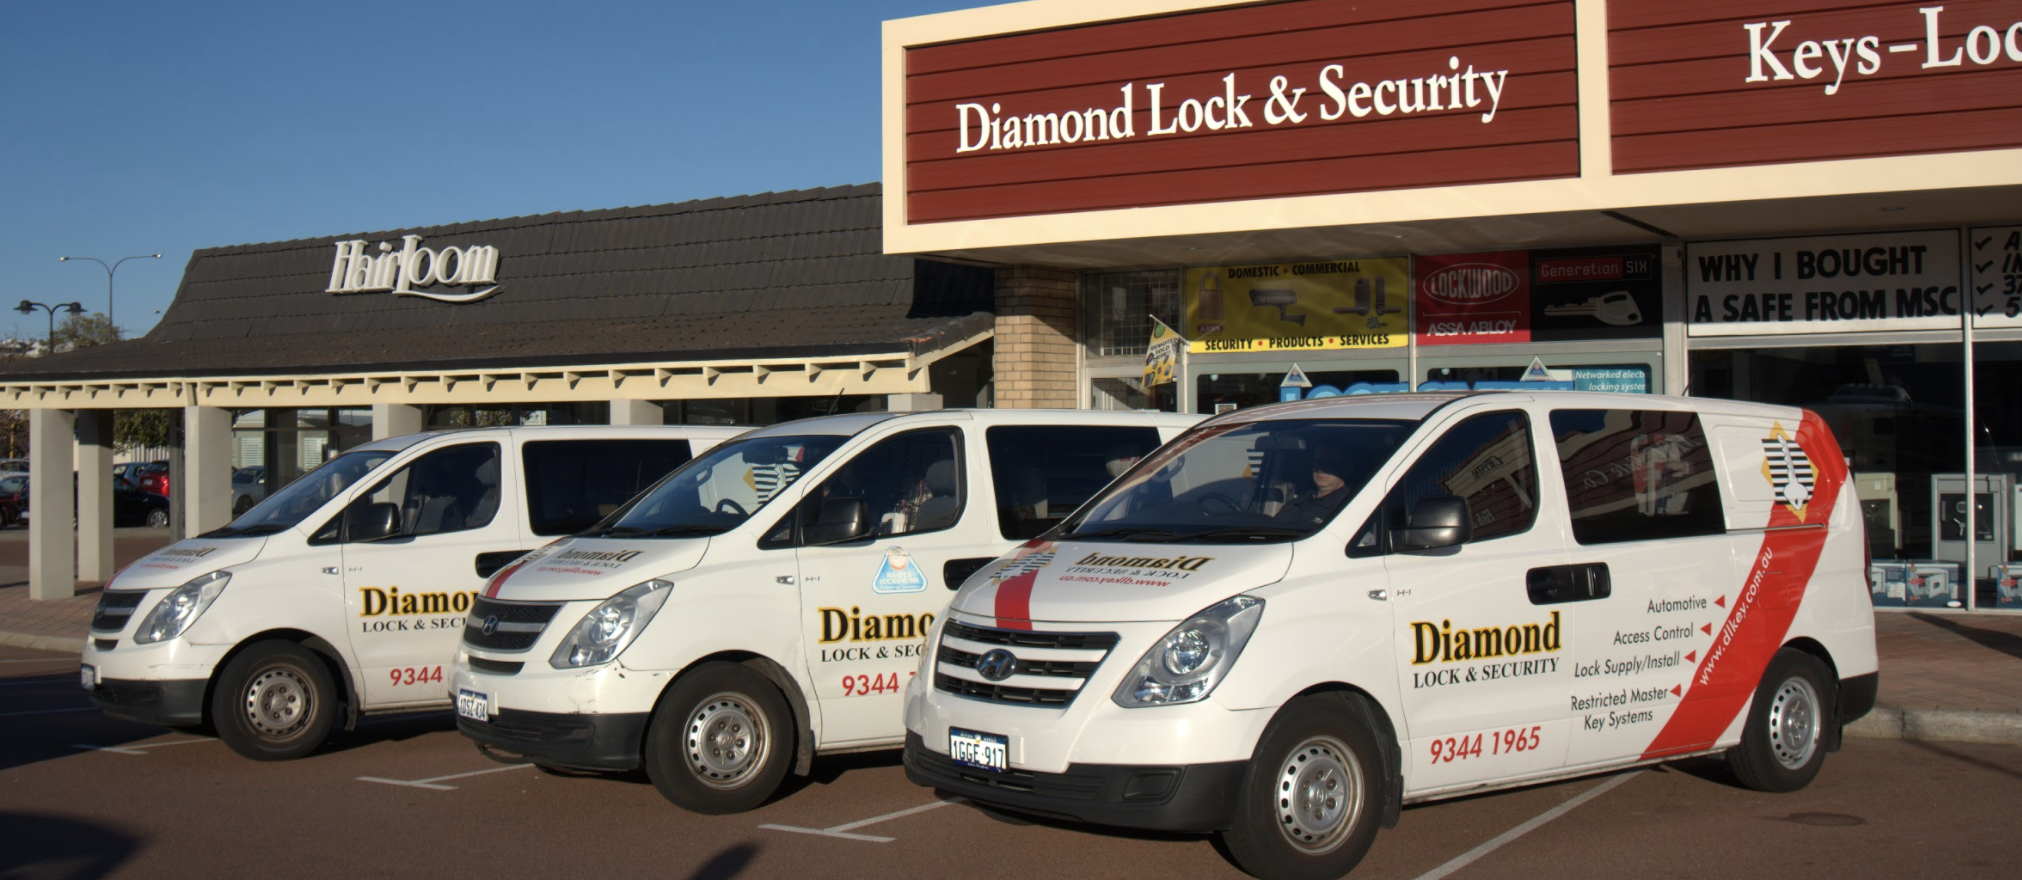 The Diamond lock and security shop front with cars.